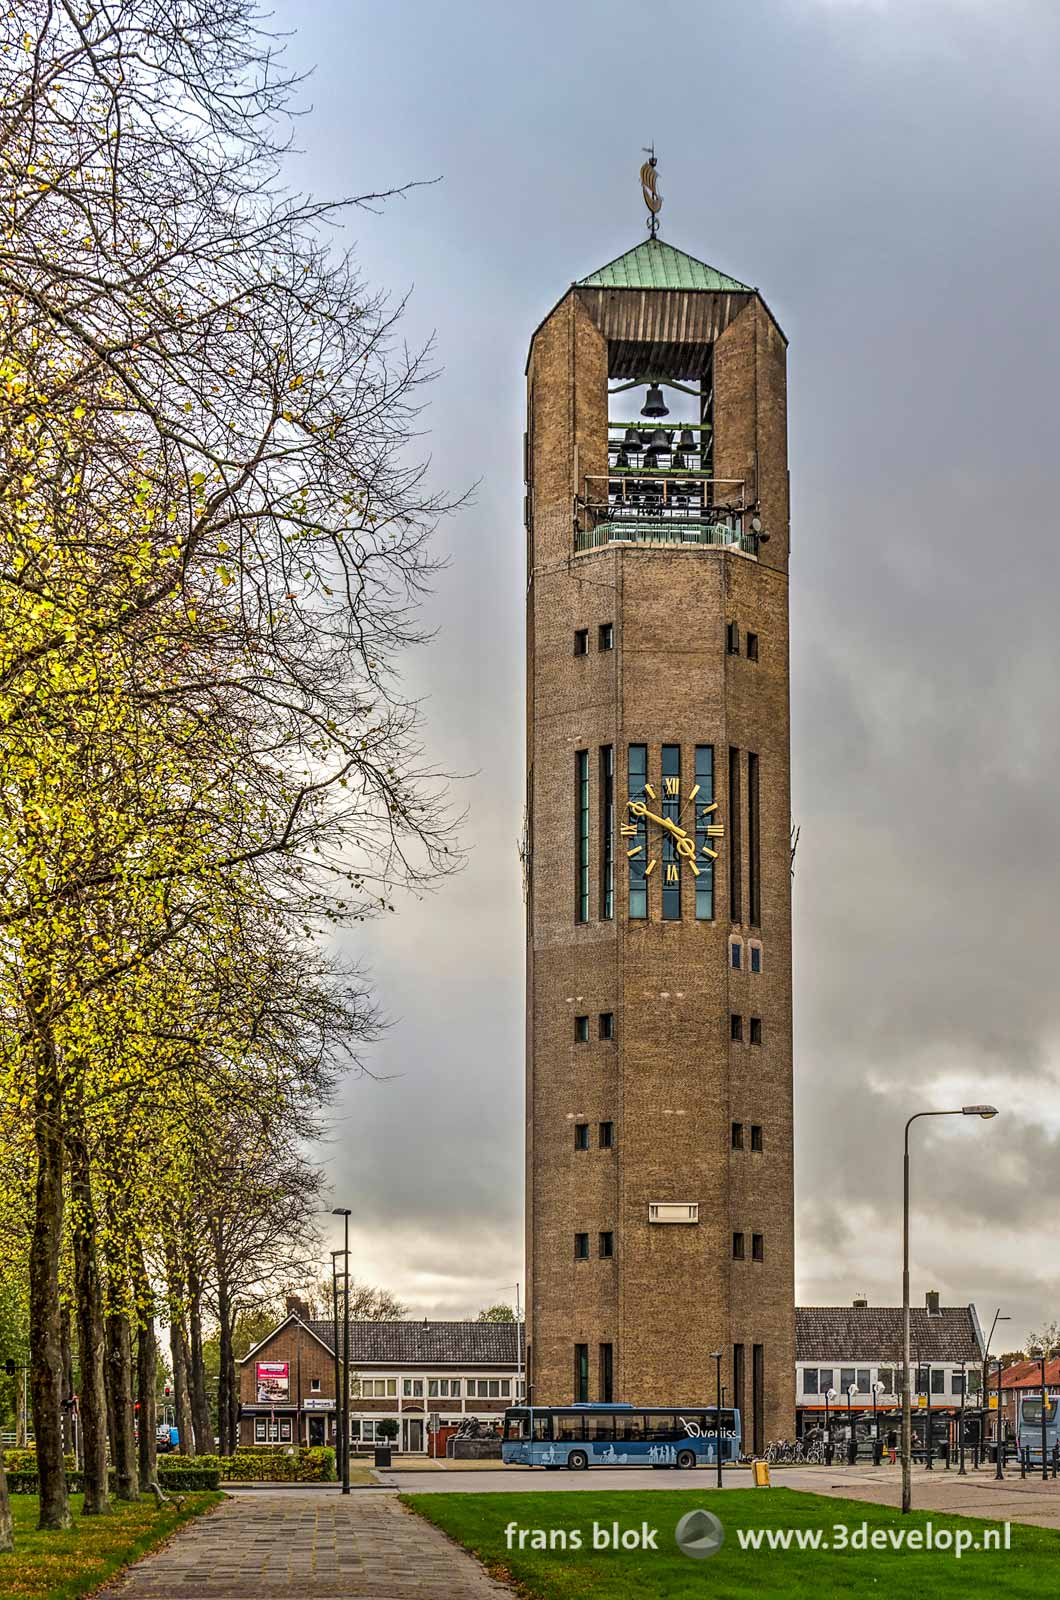 National heritage the Poldertower, with bells and clock, at the busstation in Emmeloord in the North East Polder in the Netherlands